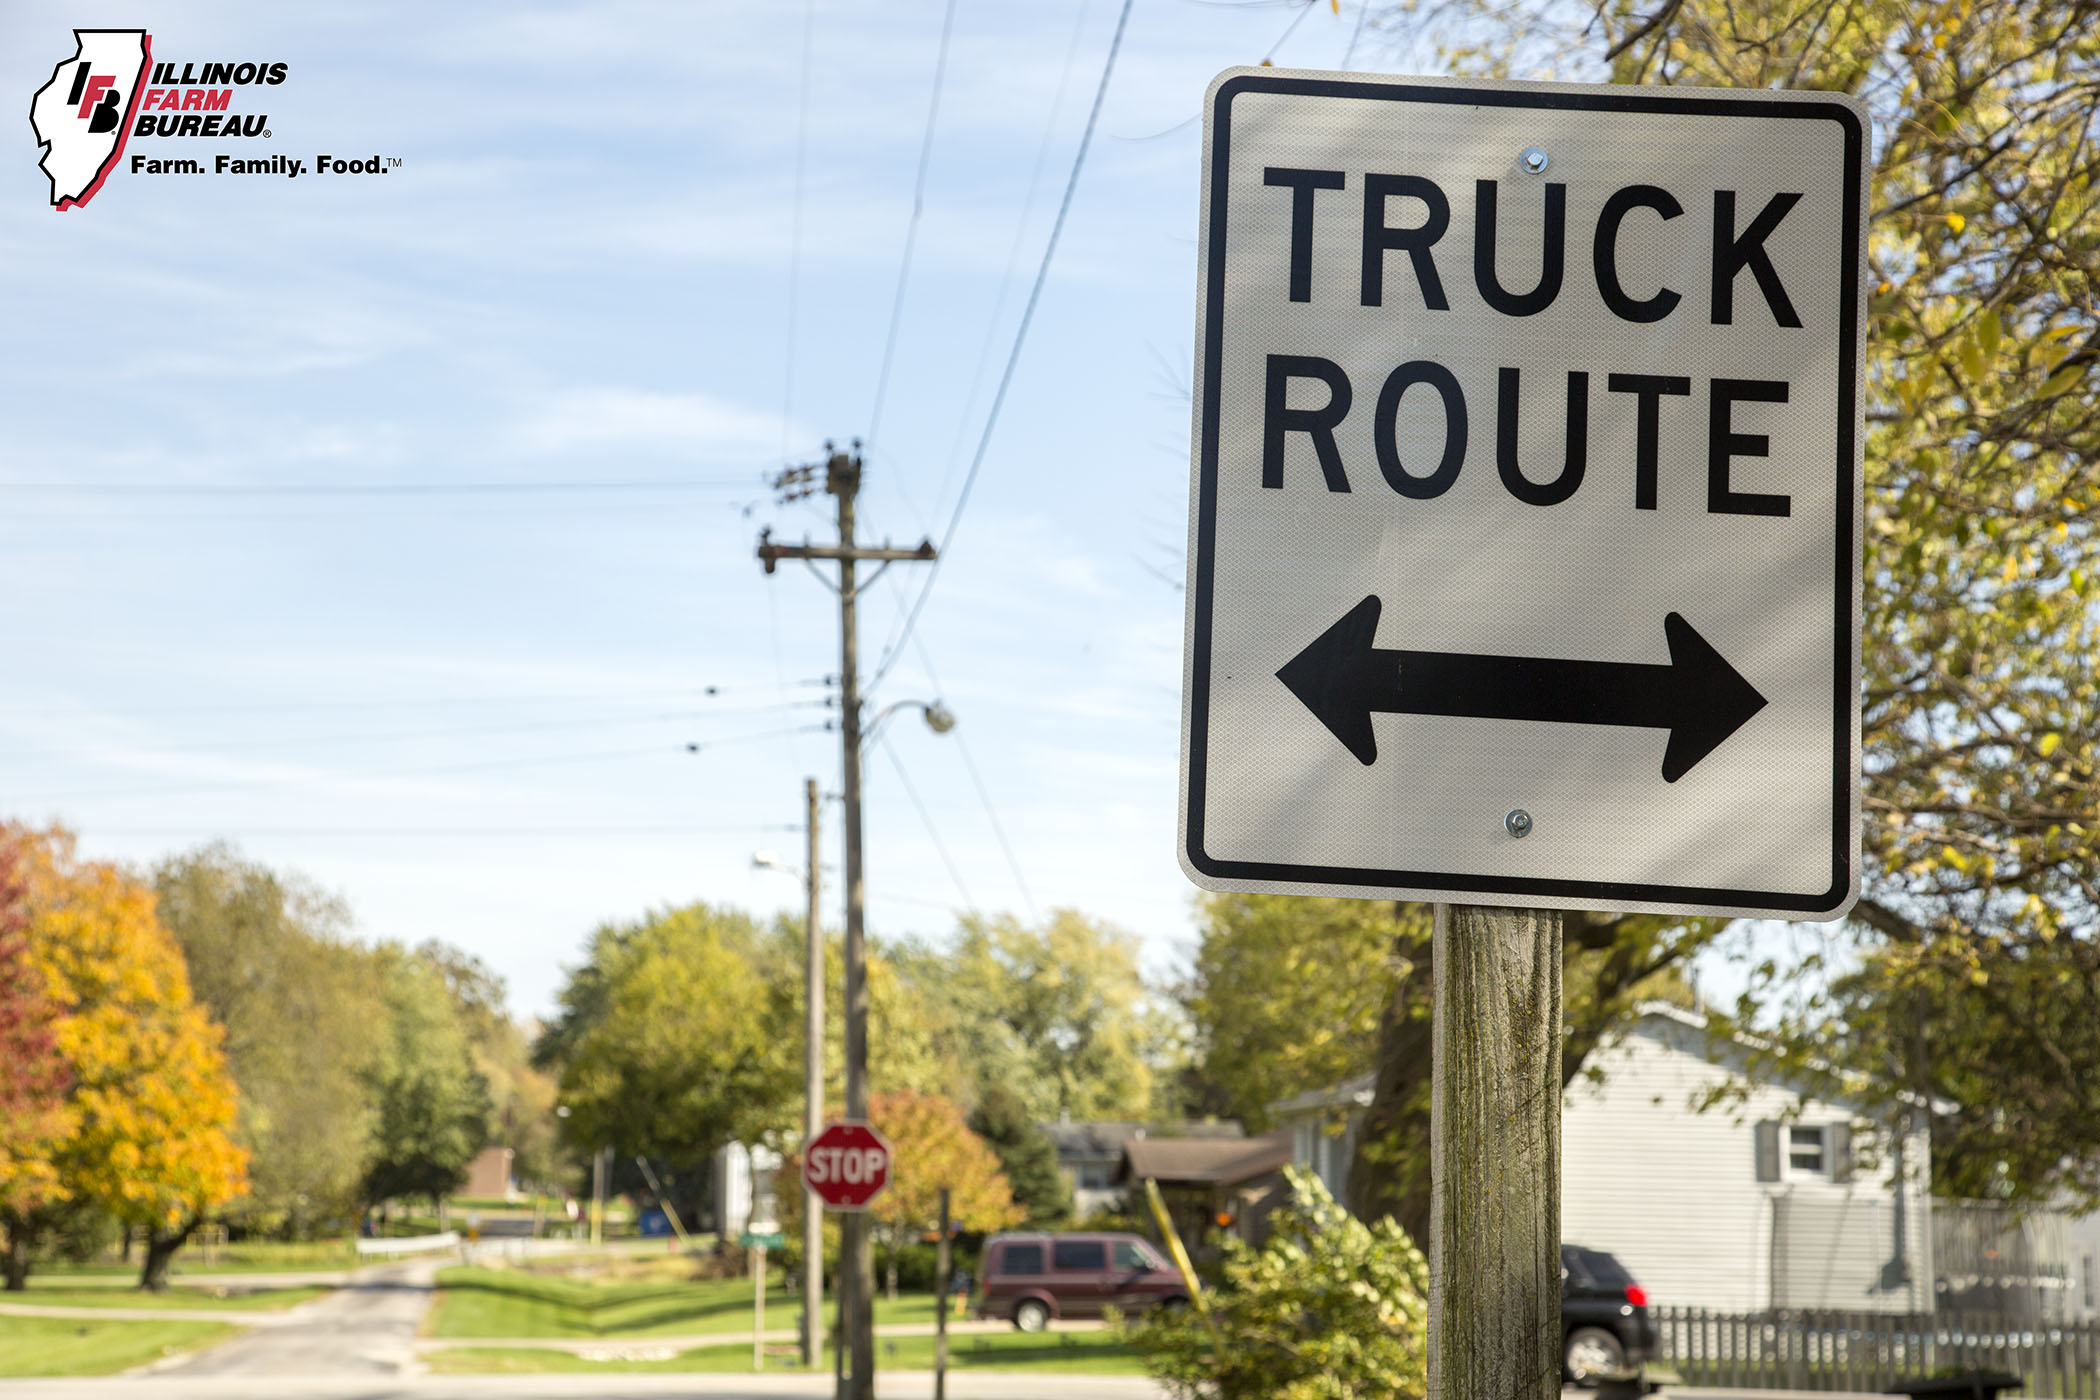 County Farm Bureaus planning March transportation rule seminars